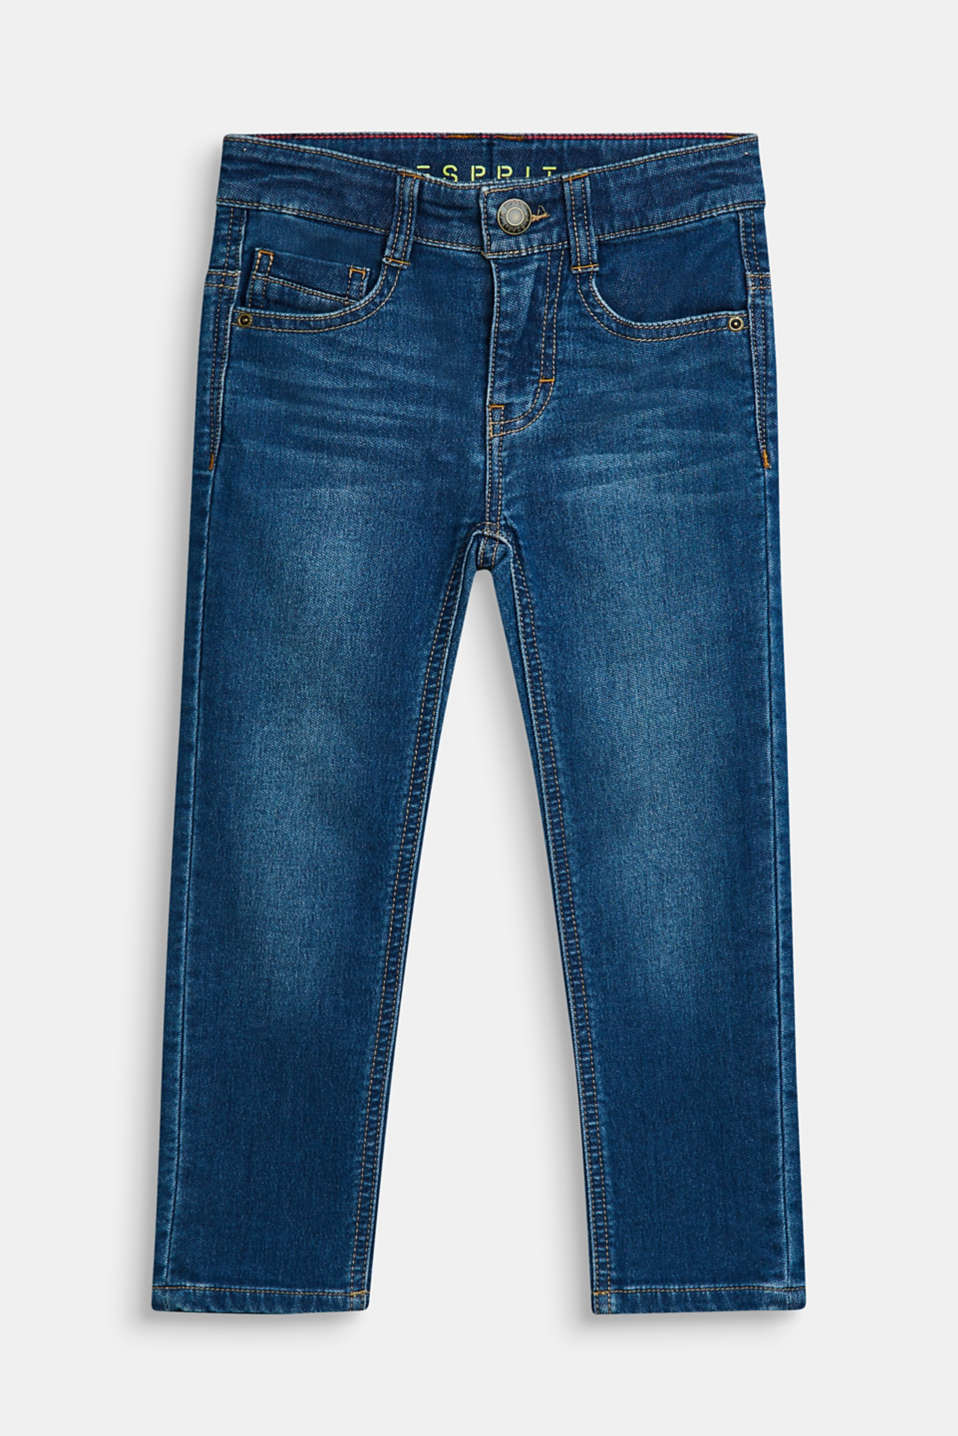 Esprit - Jeans in exceptionally soft denim, adjustable waistband